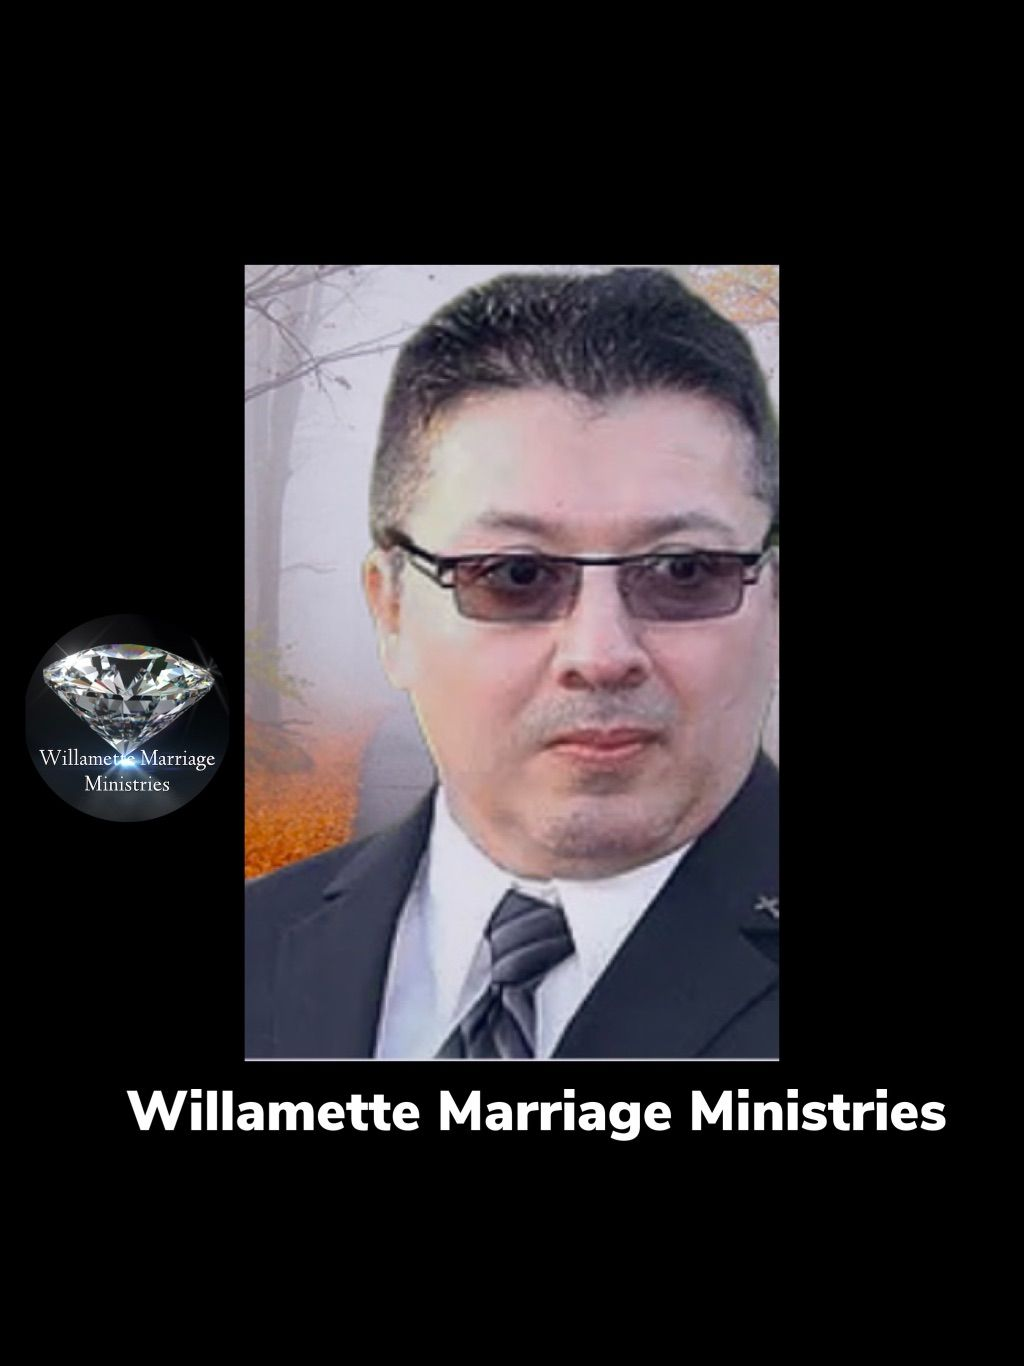 Willamette Marriage Ministries